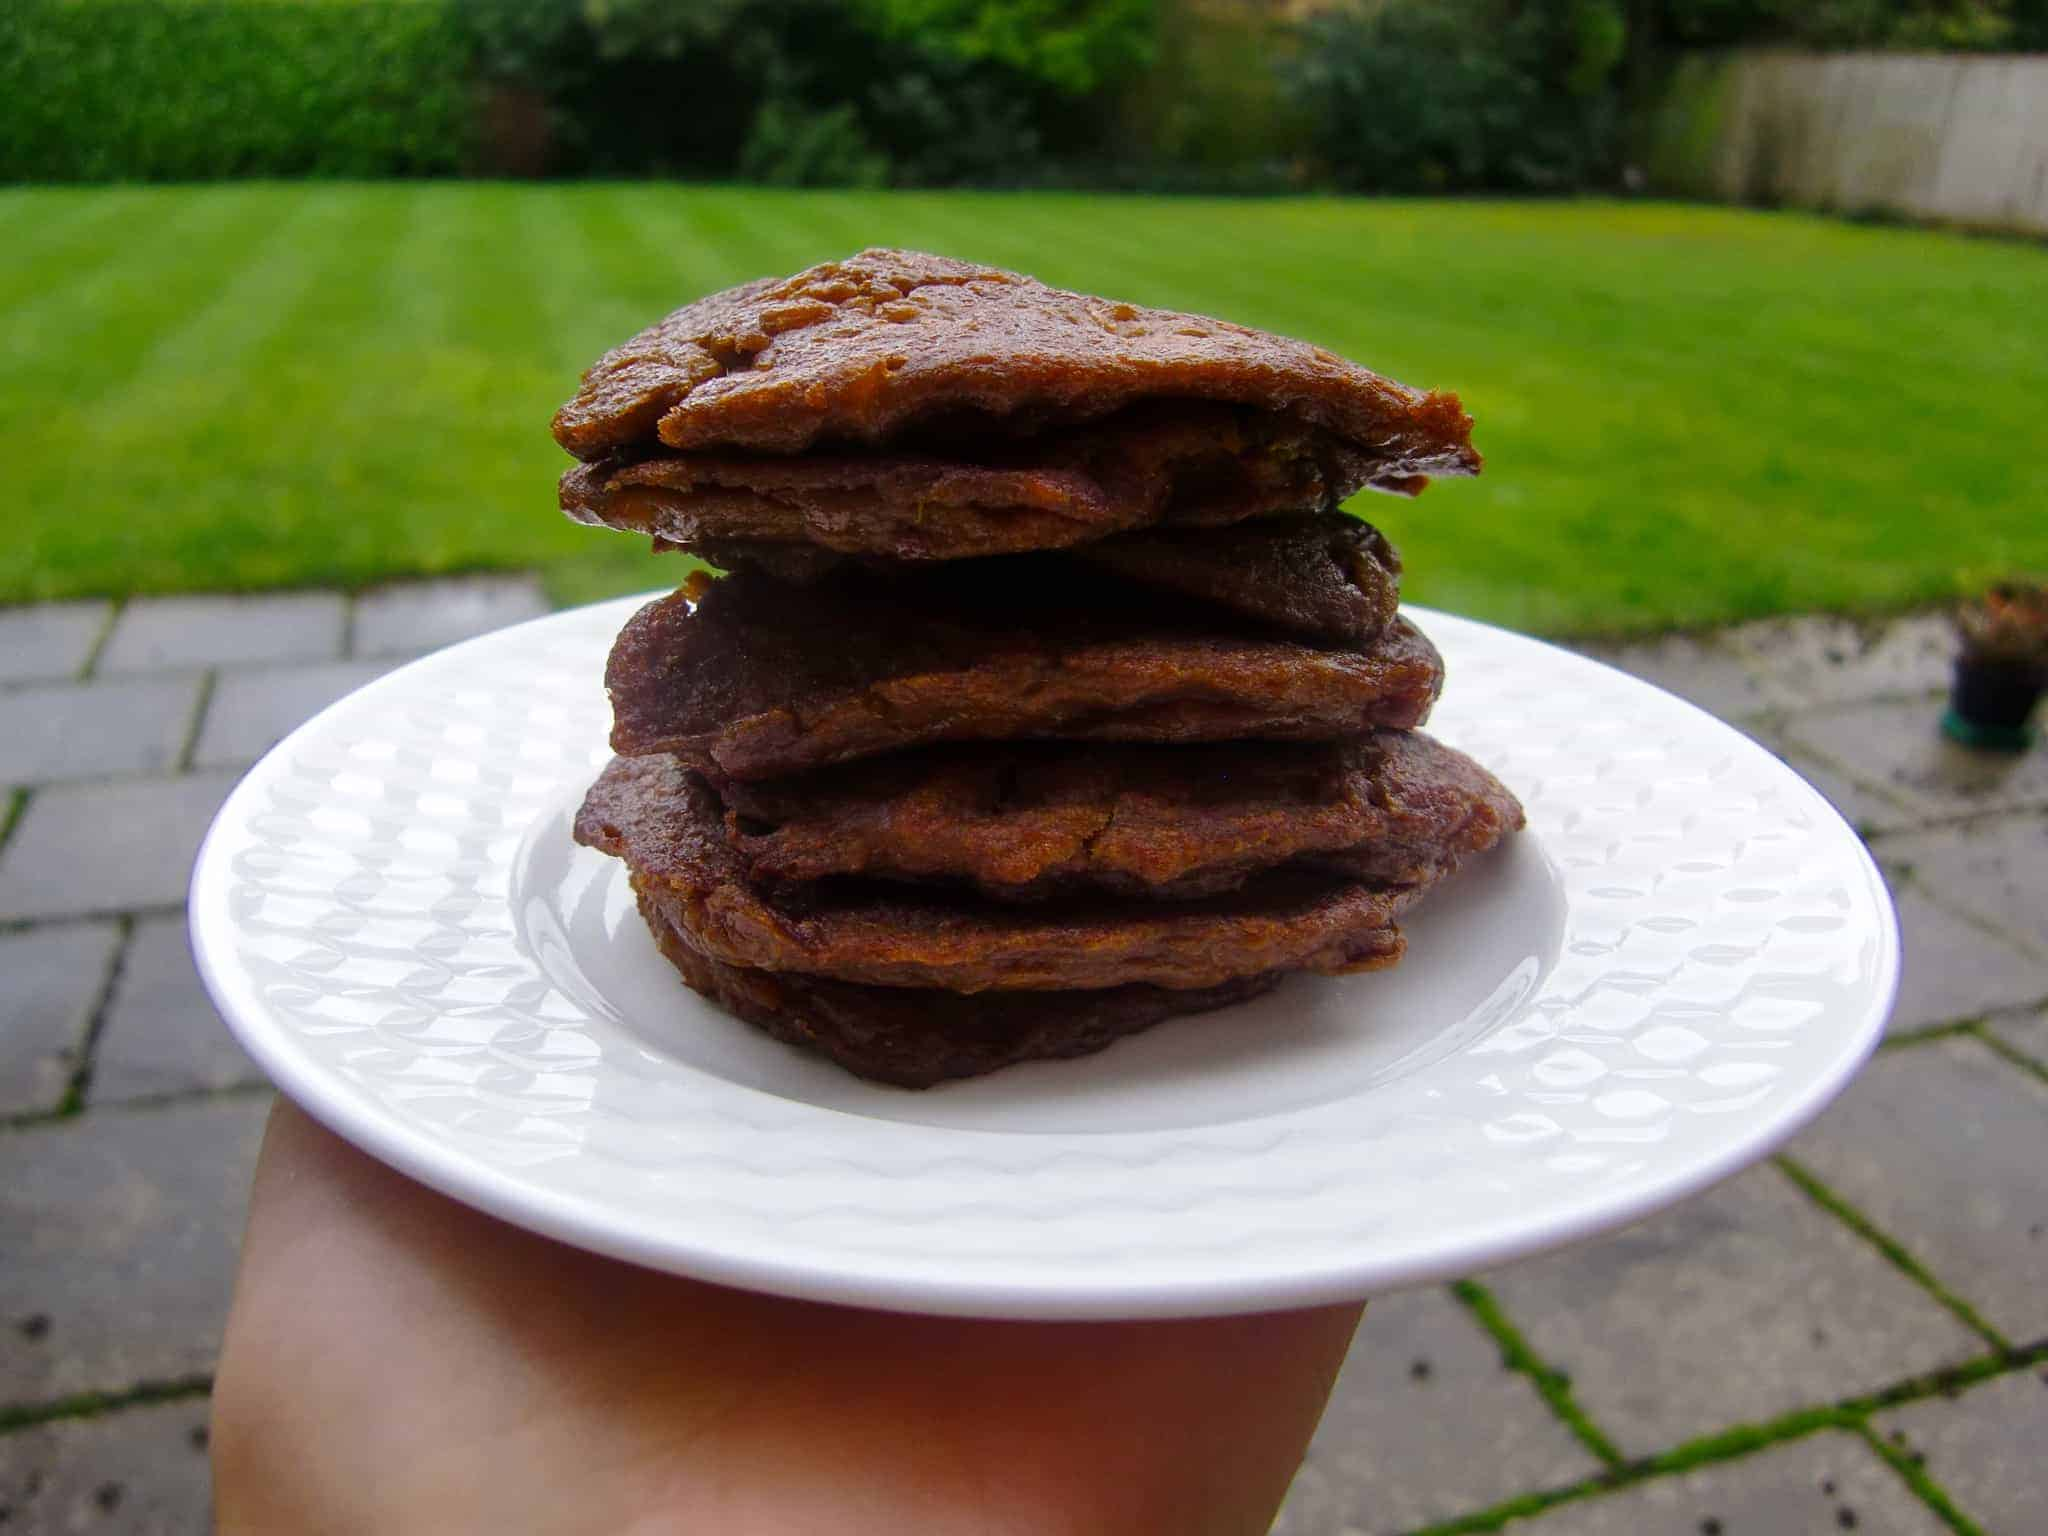 3-Ingredient Sweet Potato Chocolate Pancakes (Dairy-Free + GF)